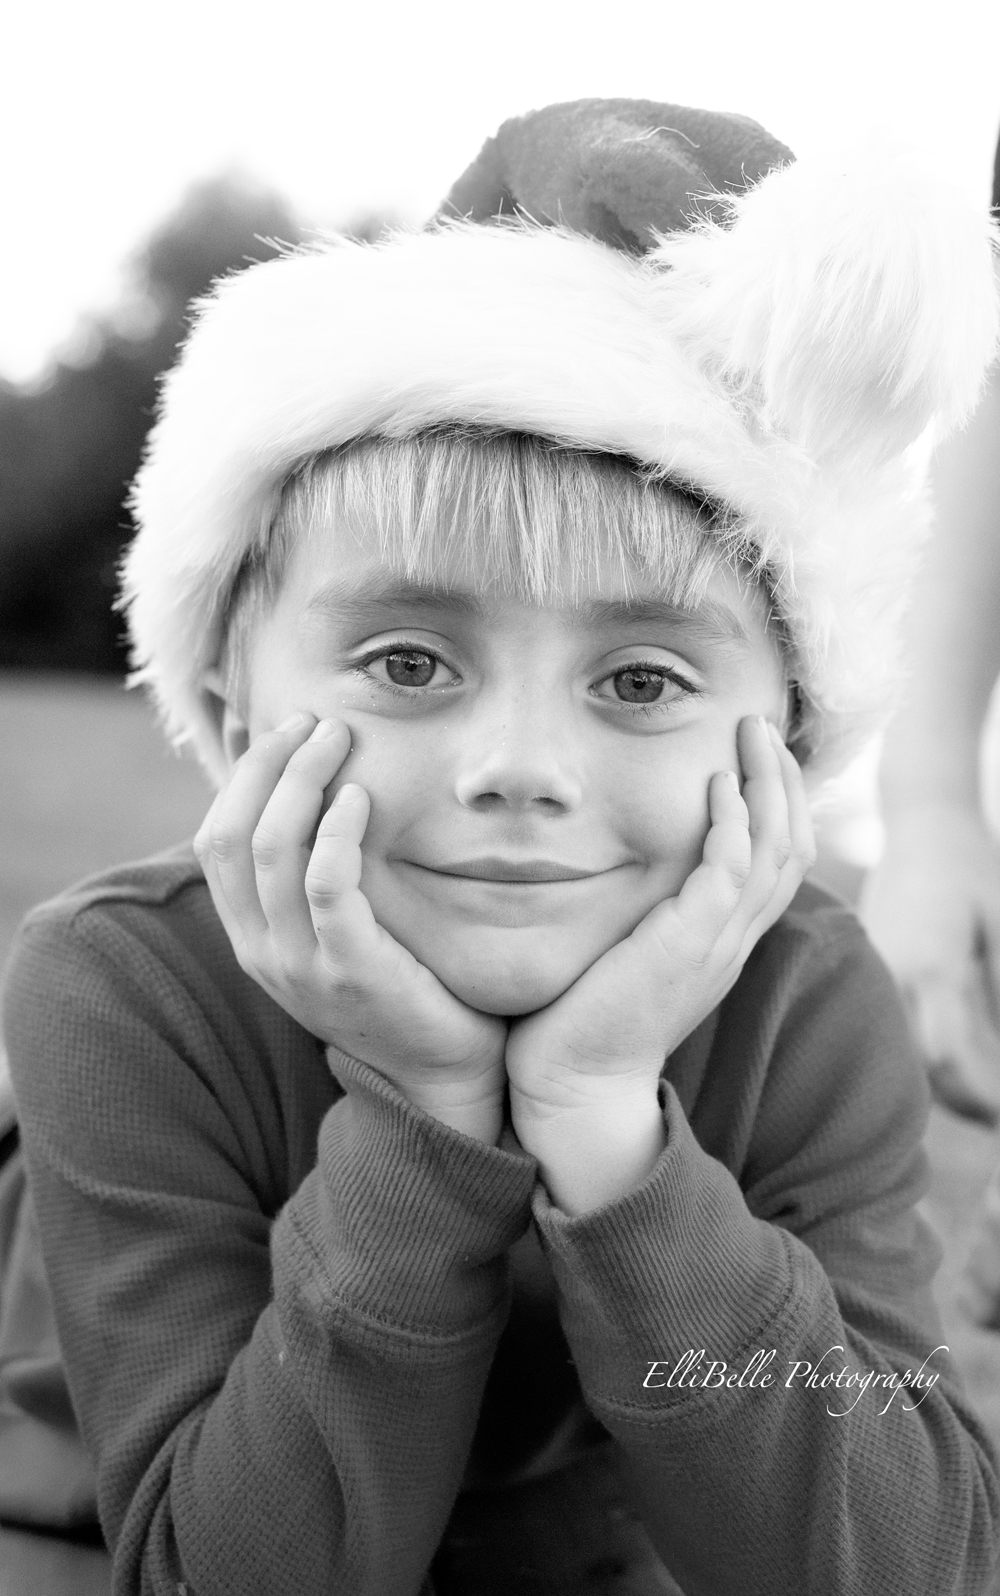 Elli-Belle Photography - Christmas Pictures Santa Hat